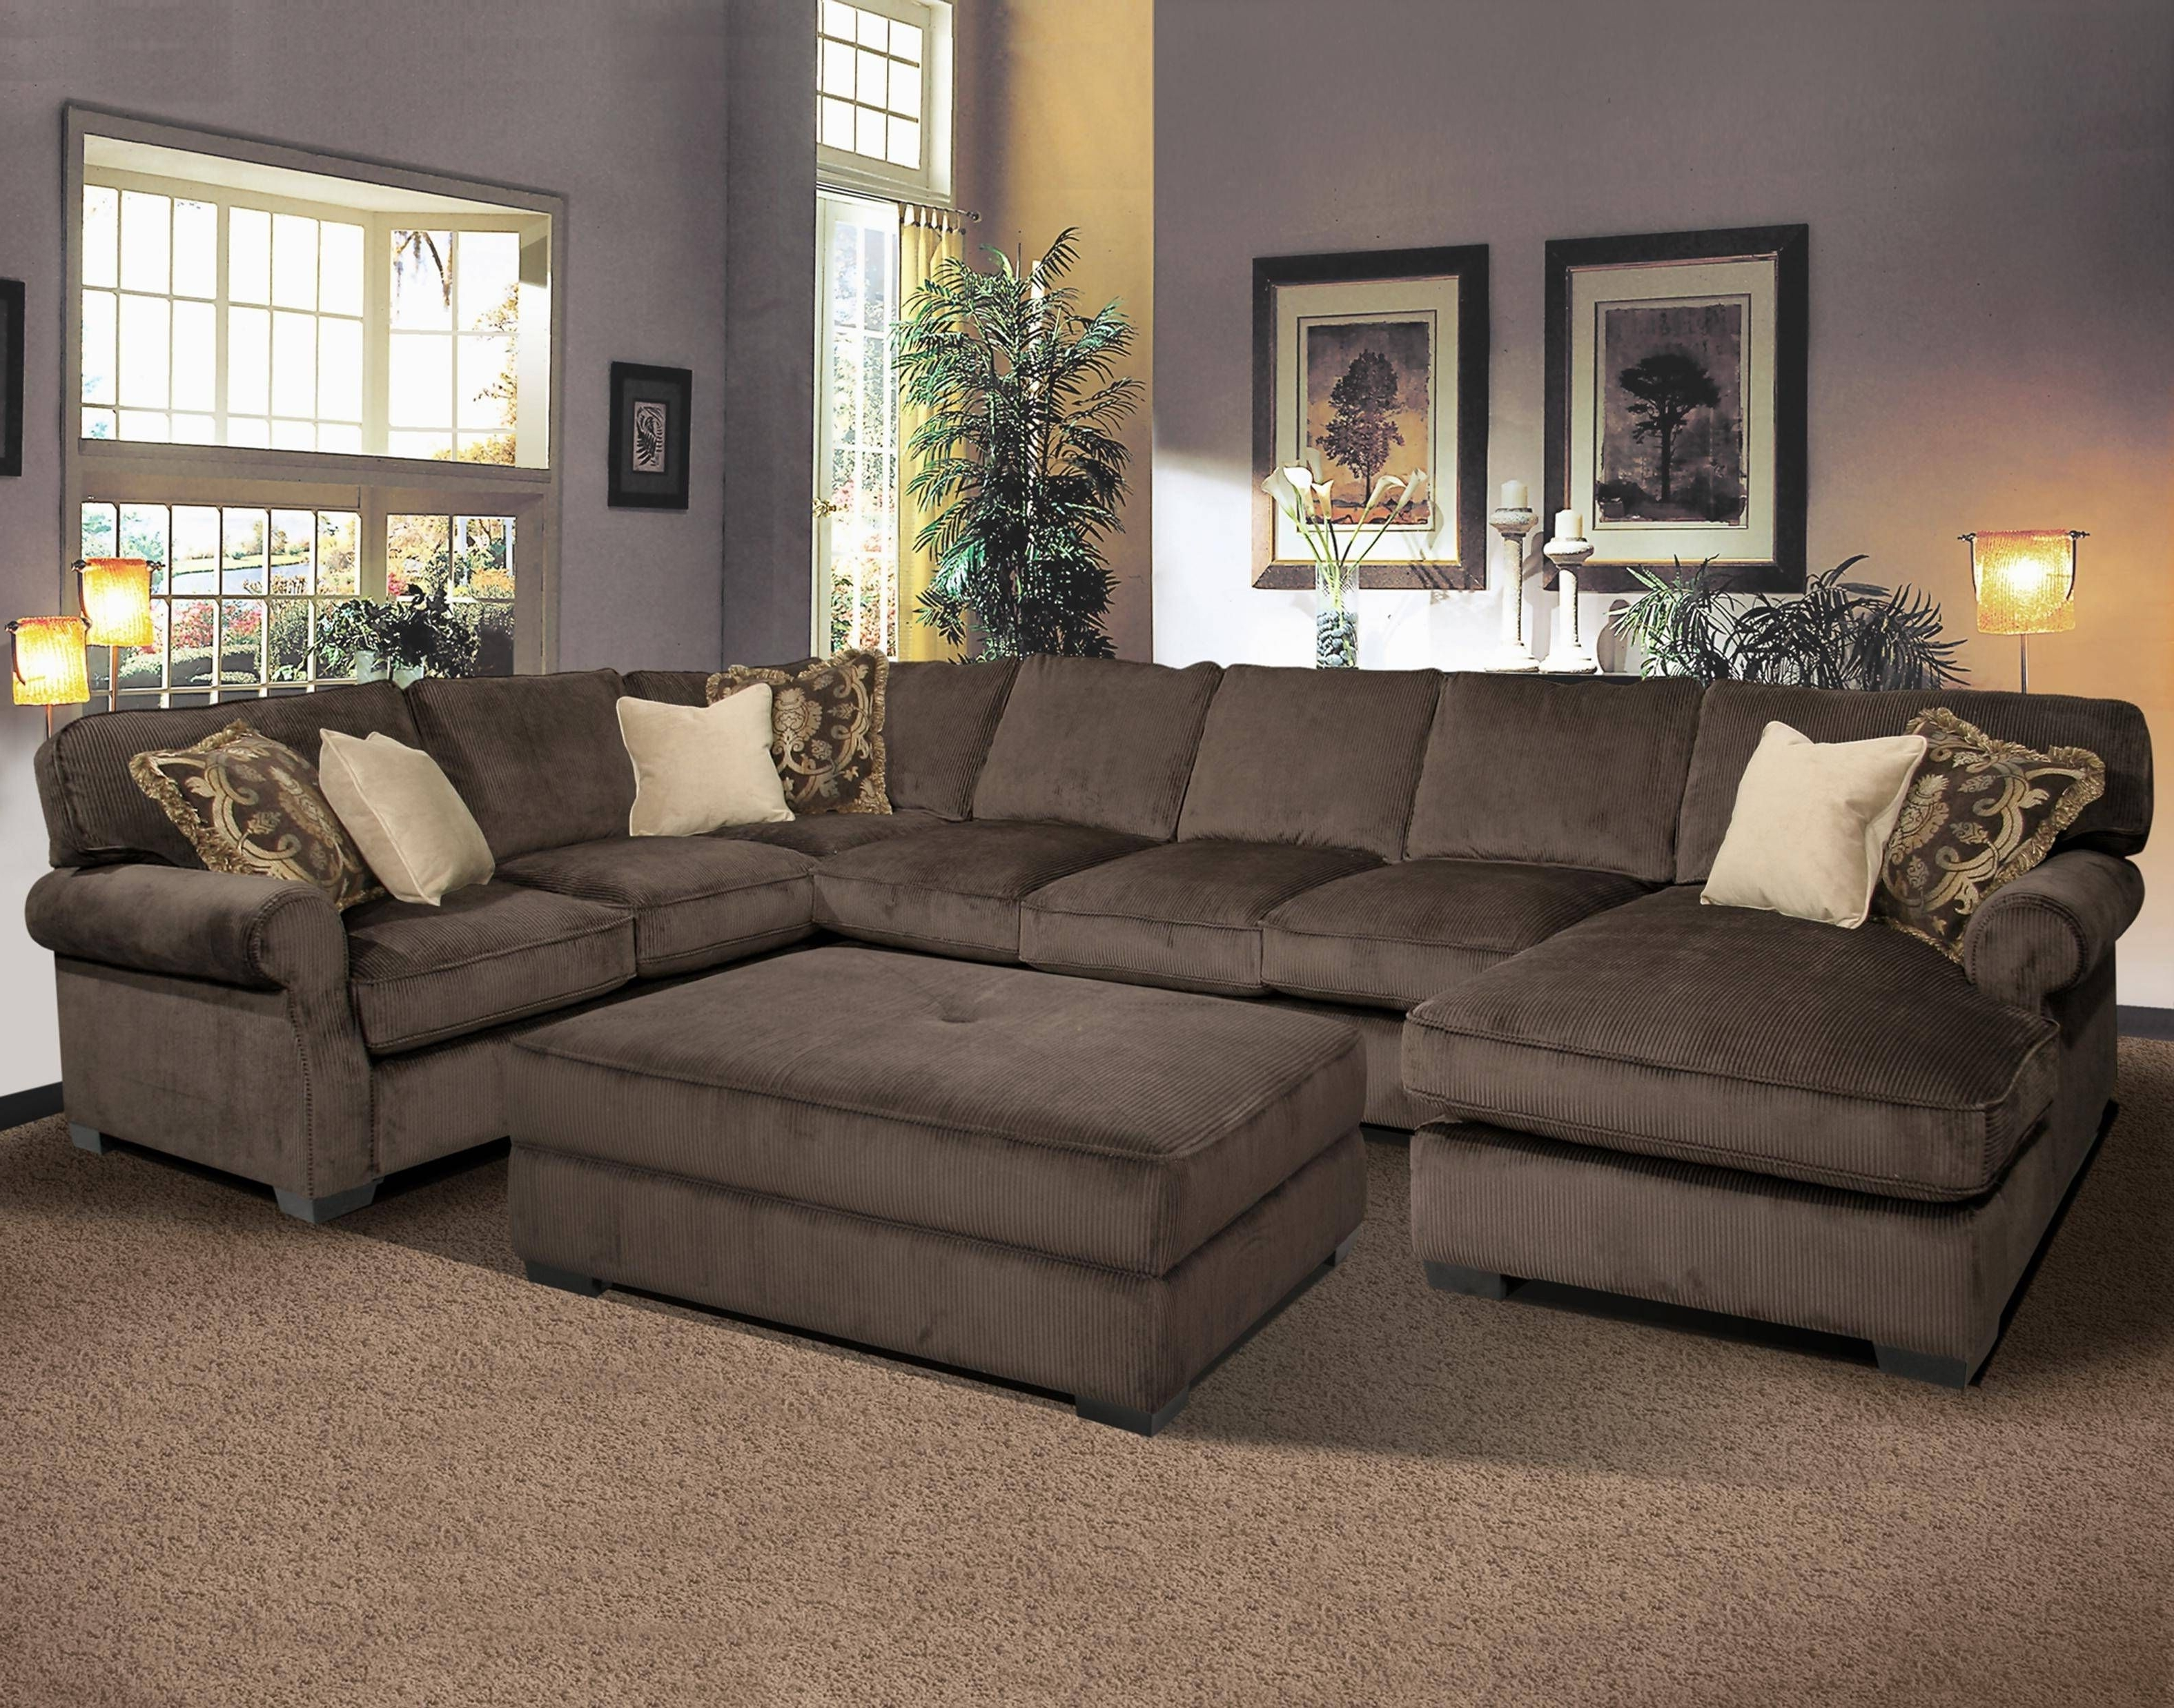 2017 Shocking The Bestshaped Leather Sectional Sofa Pic Of Popular And With Tan Sectionals With Chaise (View 12 of 15)